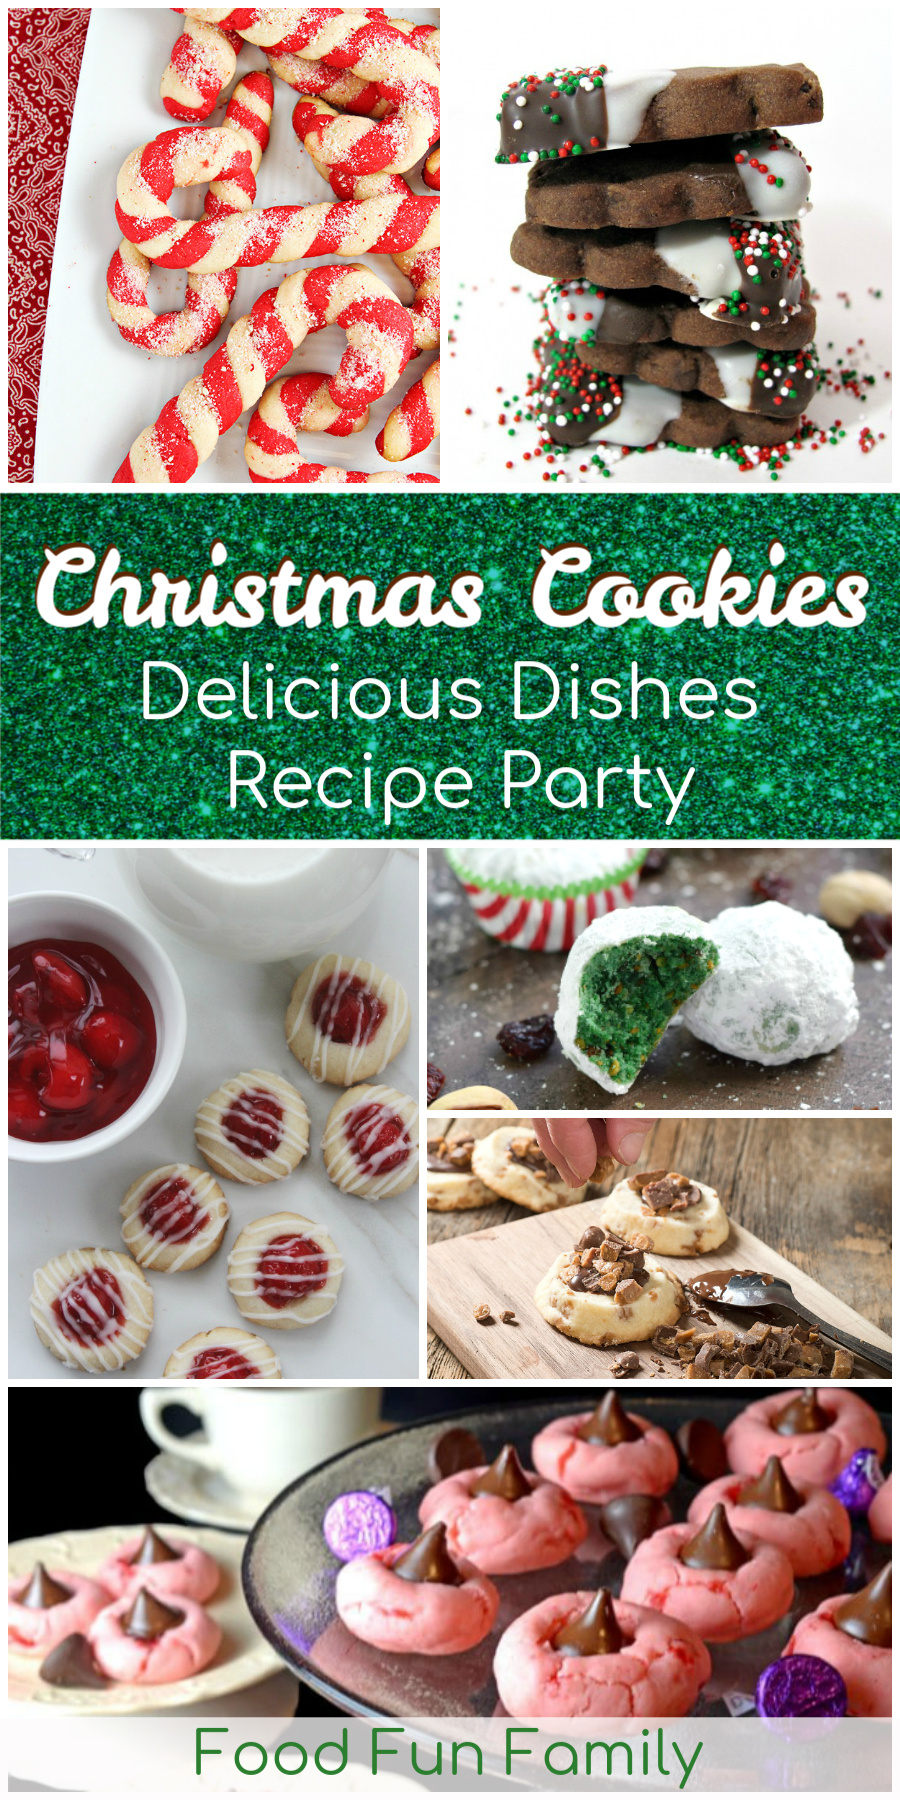 Festive Christmas cookies - perfect for sharing and cookie plates! A Delicious Dishes Recipe Party collection with Food Fun Family